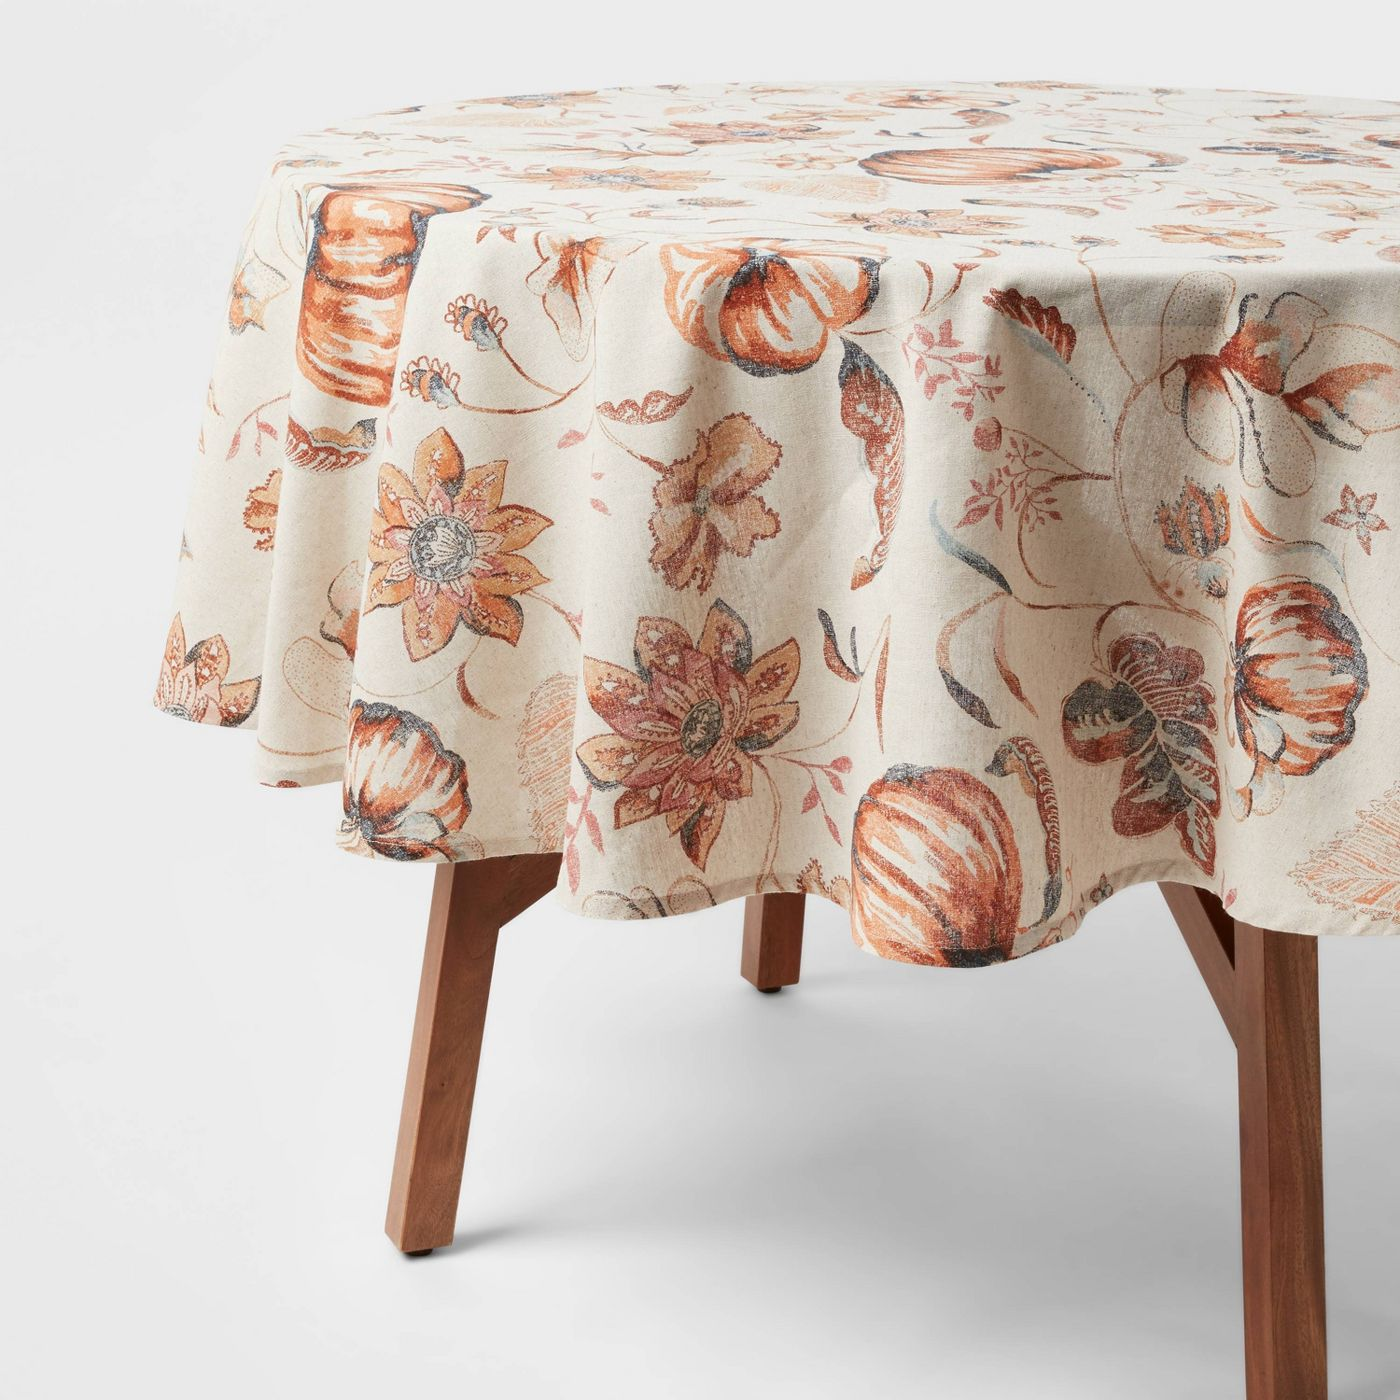 off white tablecloth with pumpkin and leaf watercolor motif